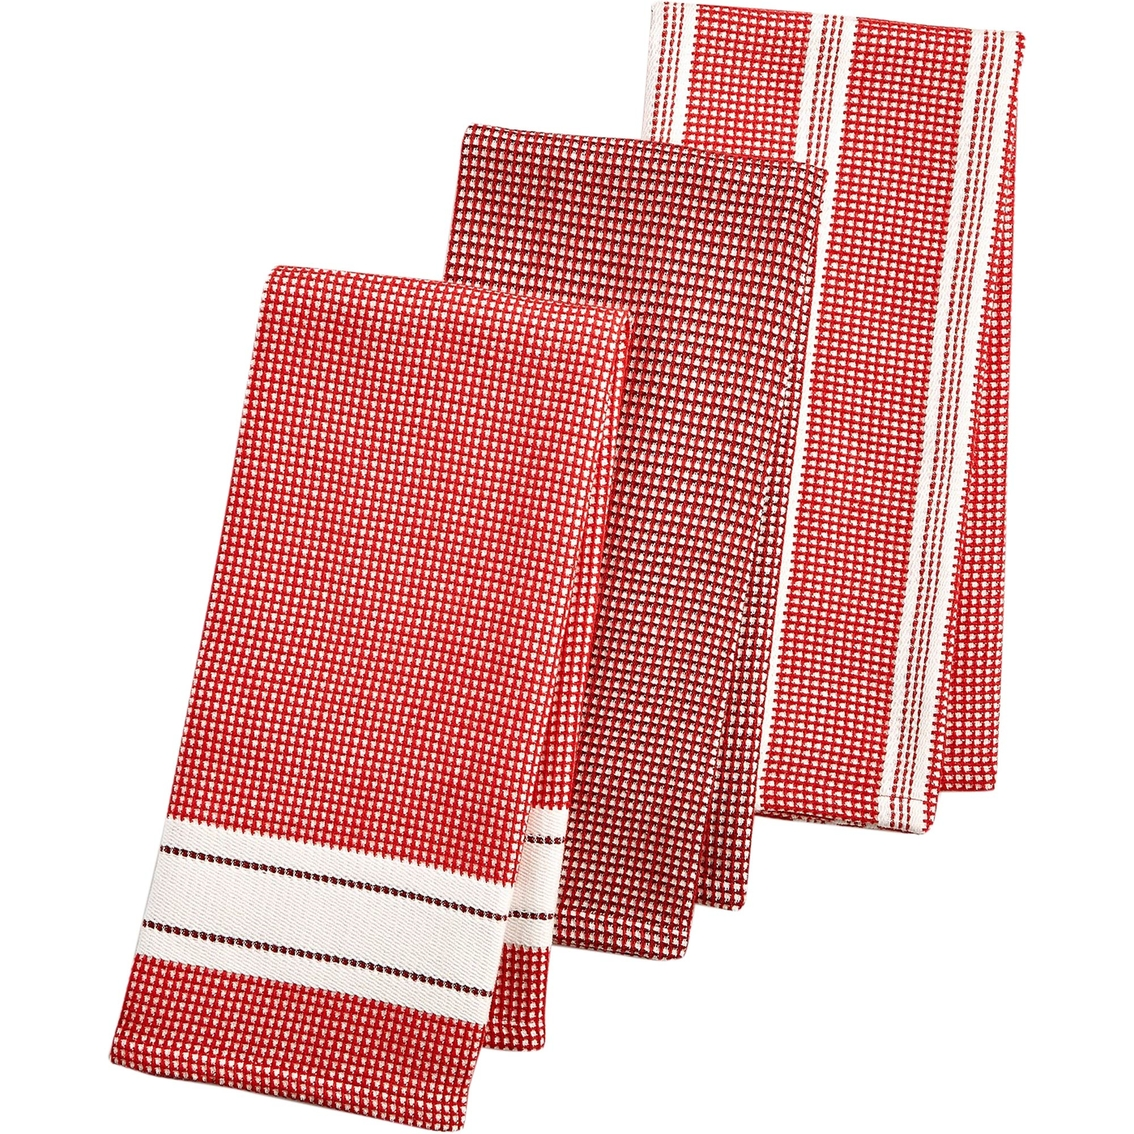 Martha Stewart Kitchen Towels: Martha Stewart Collection 3 Pc. Waffle Weave Kitchen Towel